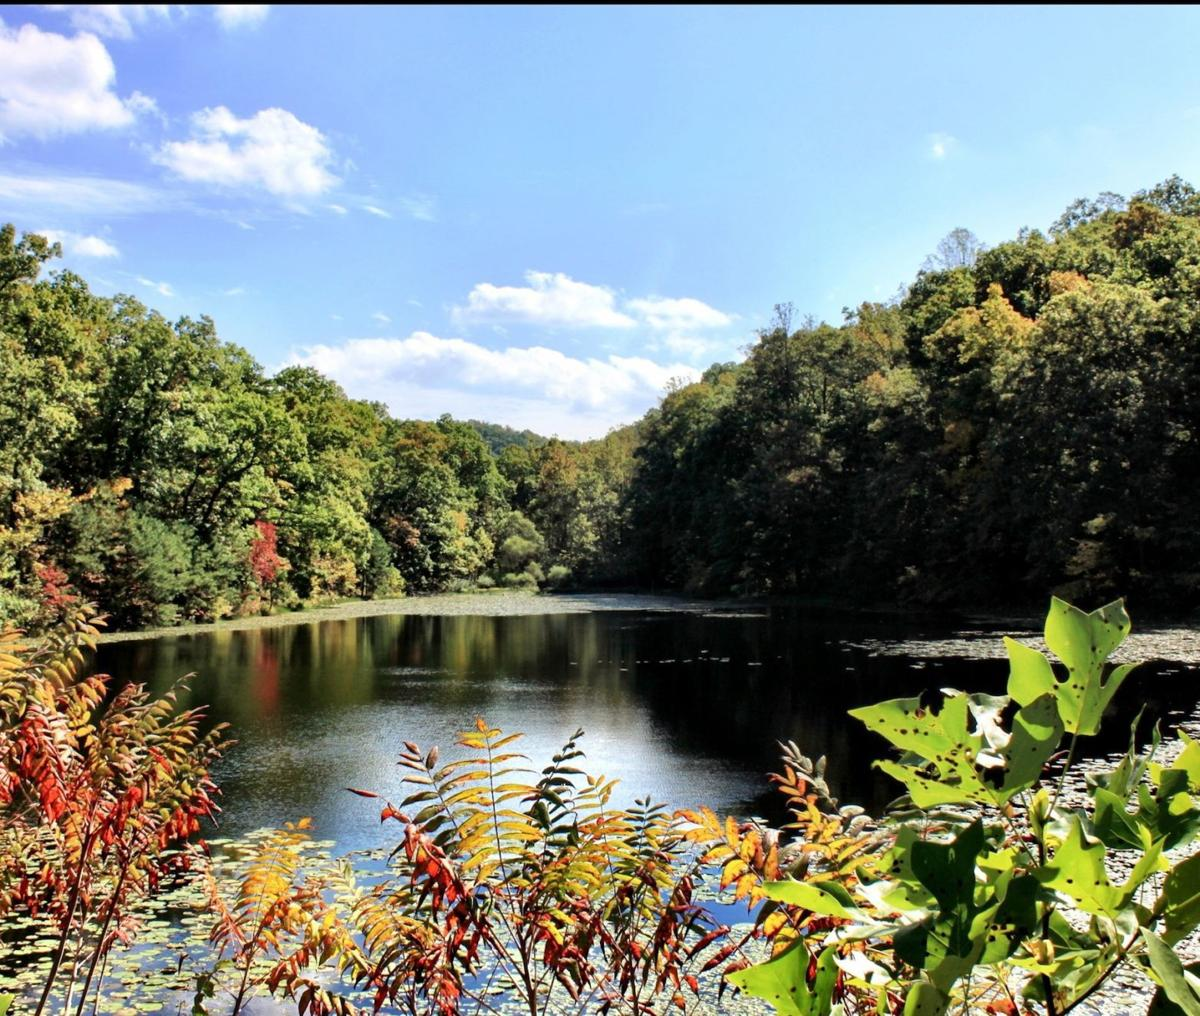 Shawnee State Park and Forest in south central Ohio